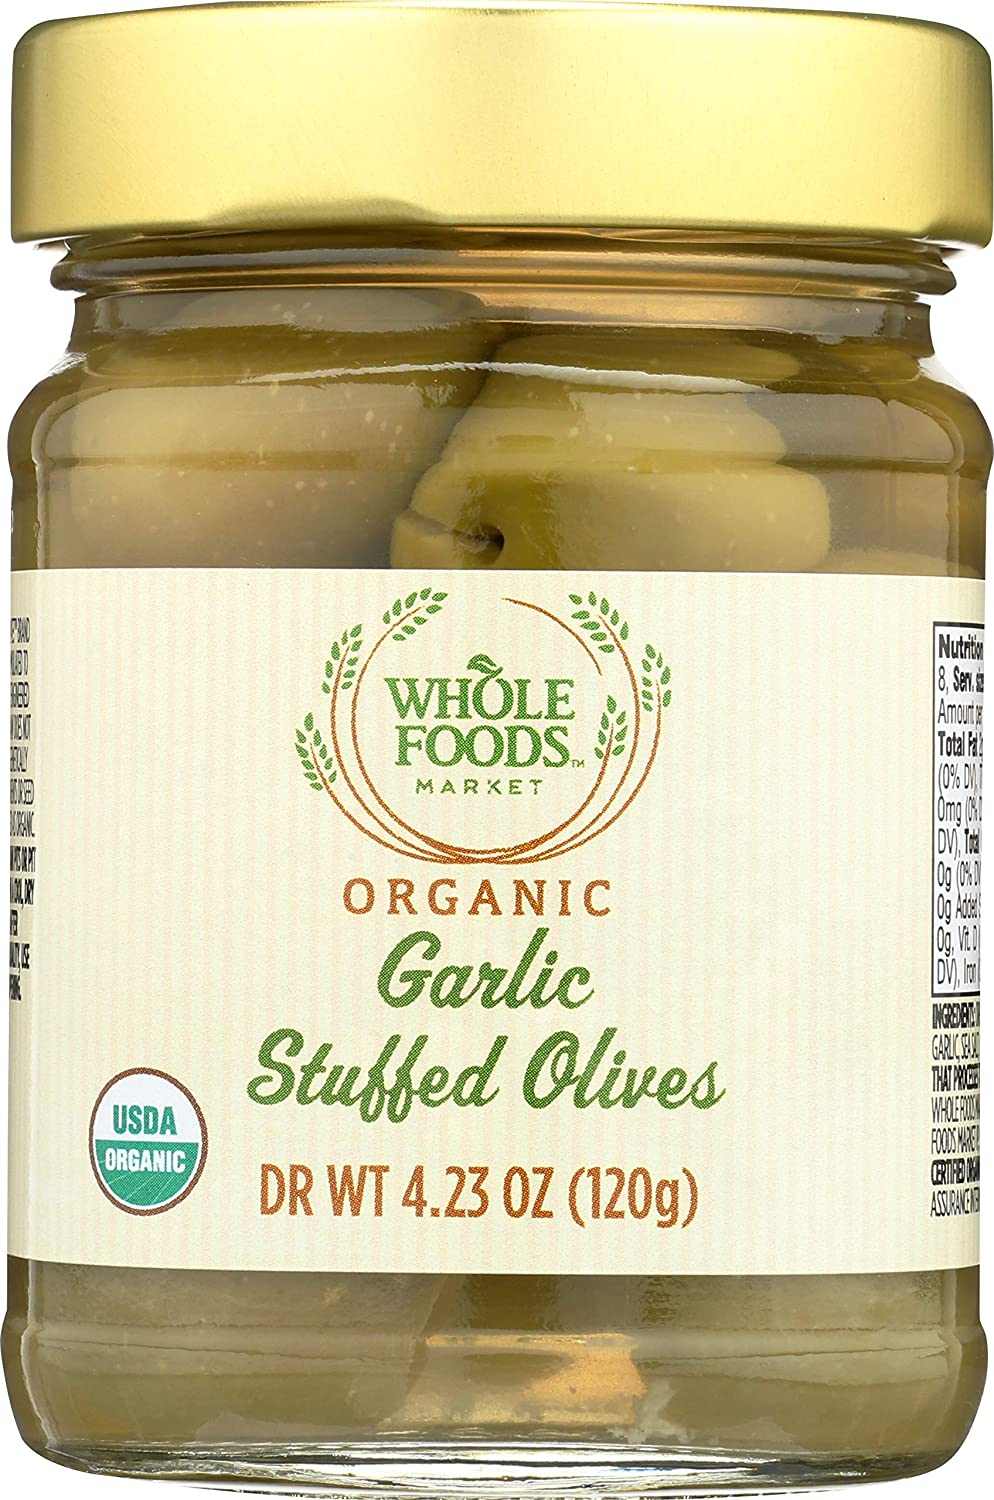 Whole Foods Market, Organic Garlic Stuffed Olives, 4.23 oz